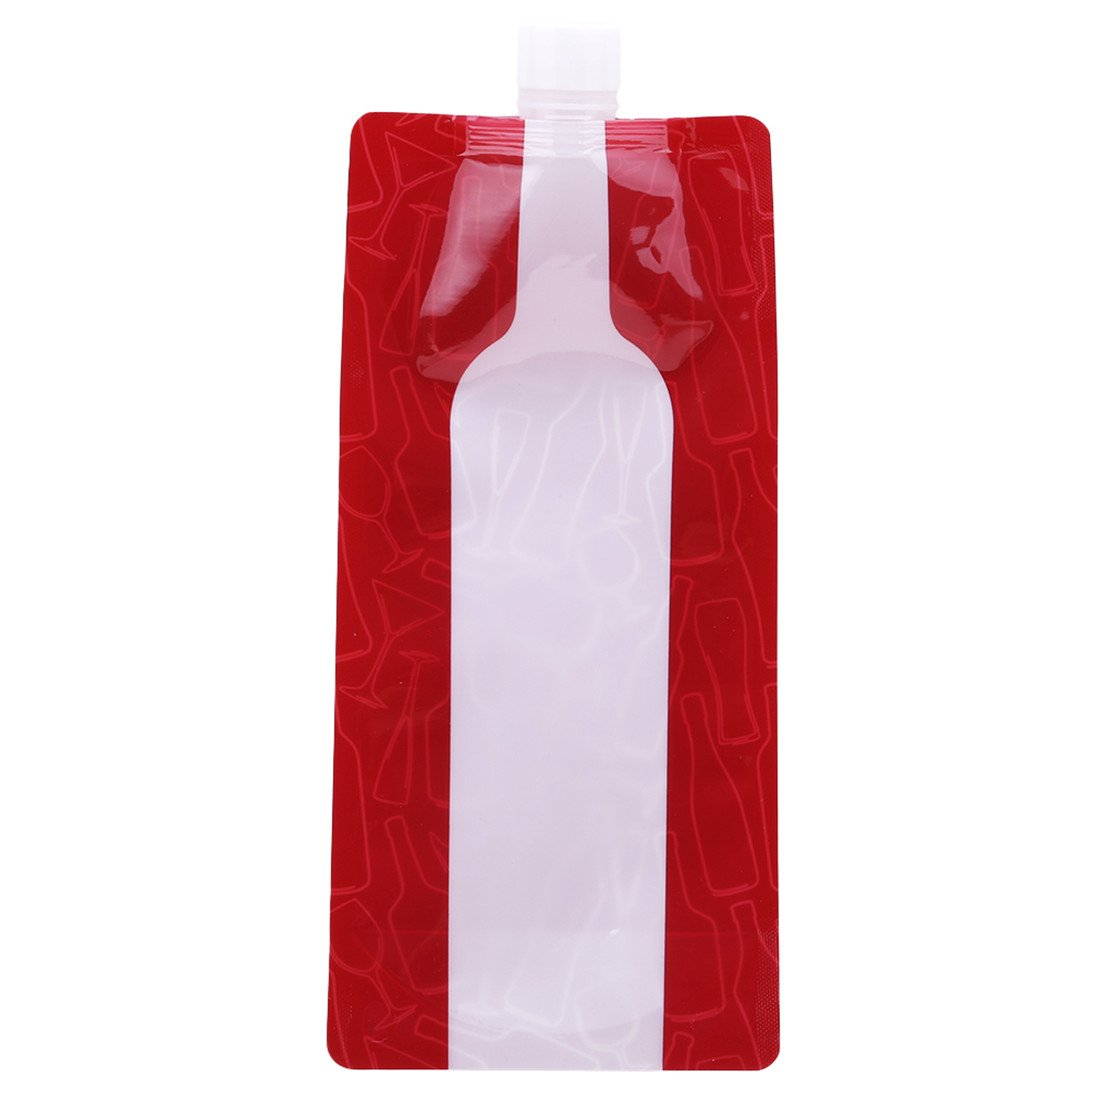 VWH Foldable Wine Bag Portable Reusable Wine Bottle Pouch Collapsible Liquid Leak Proof Flask Holder for Wine Liquor Beverages Travel